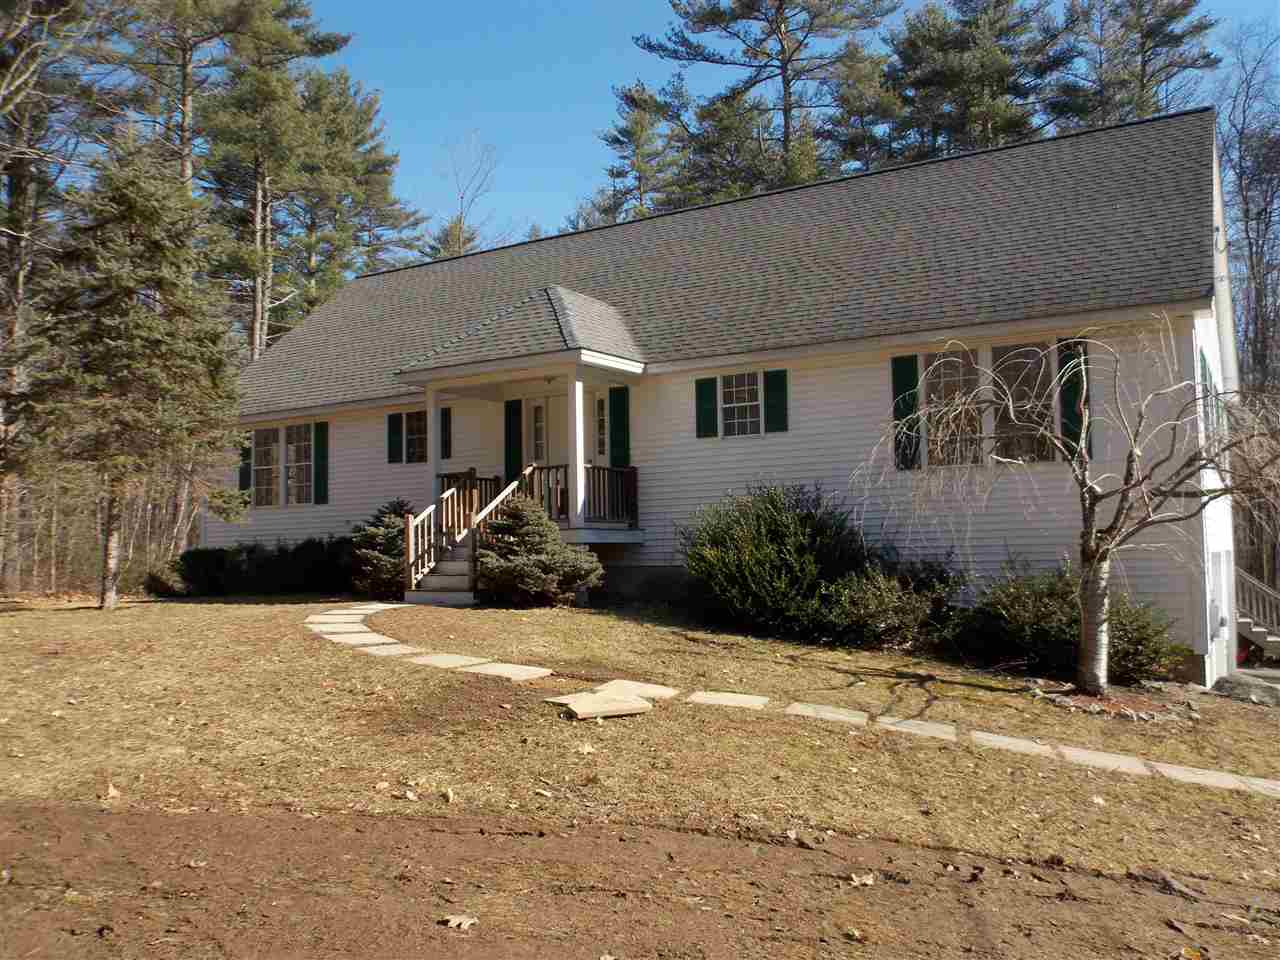 Photo of 157 Wednesday Hill Road Lee NH 03861